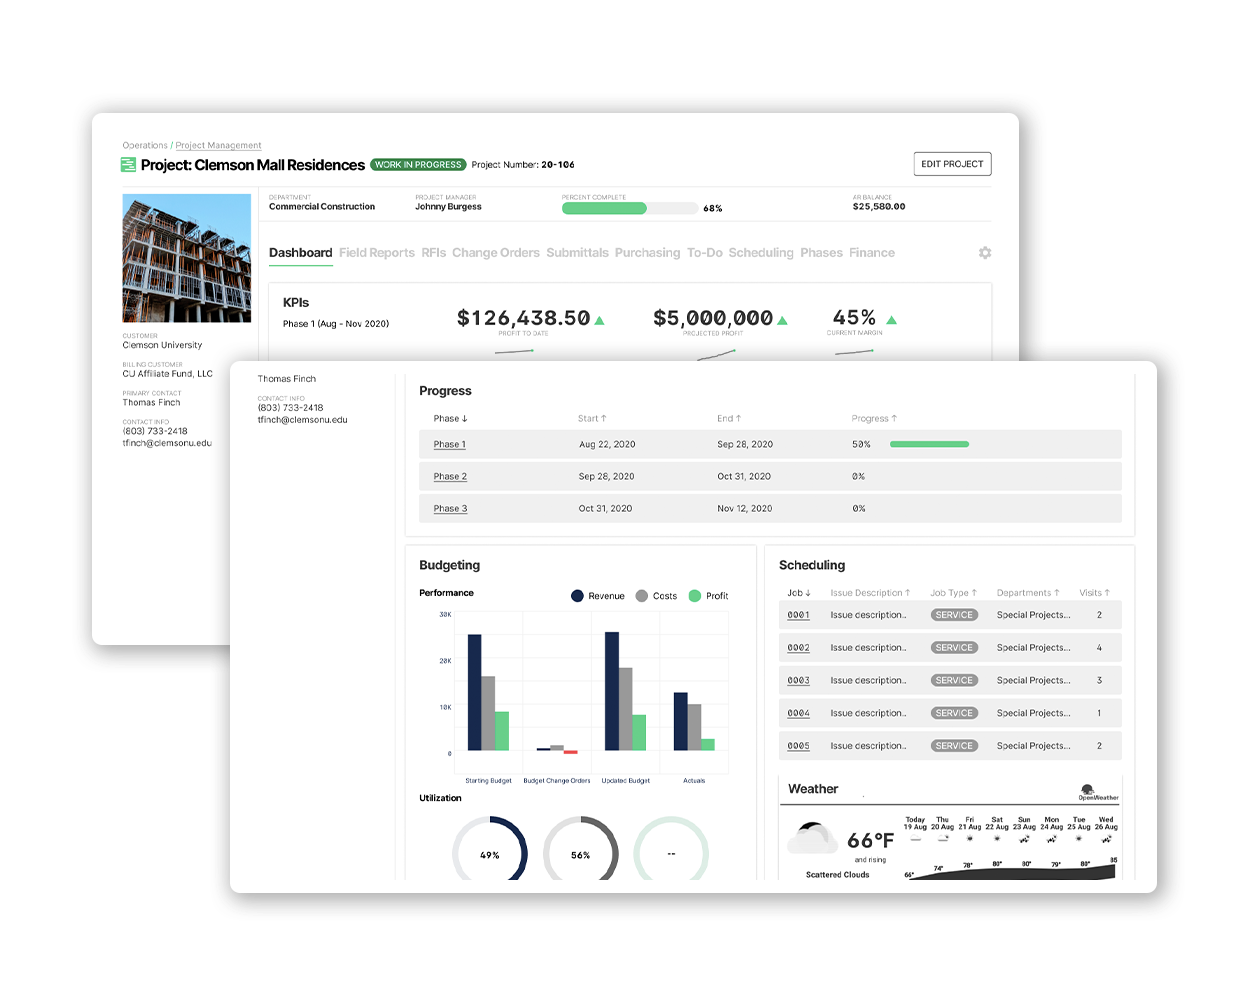 BuildOps Project Management: Deliver on schedule + within budget with full visibility into the critical KPIs (+ more): - Projected profit + profit to date - Margins - Budgeting, job costing + utilization amounts - Even the weather on location